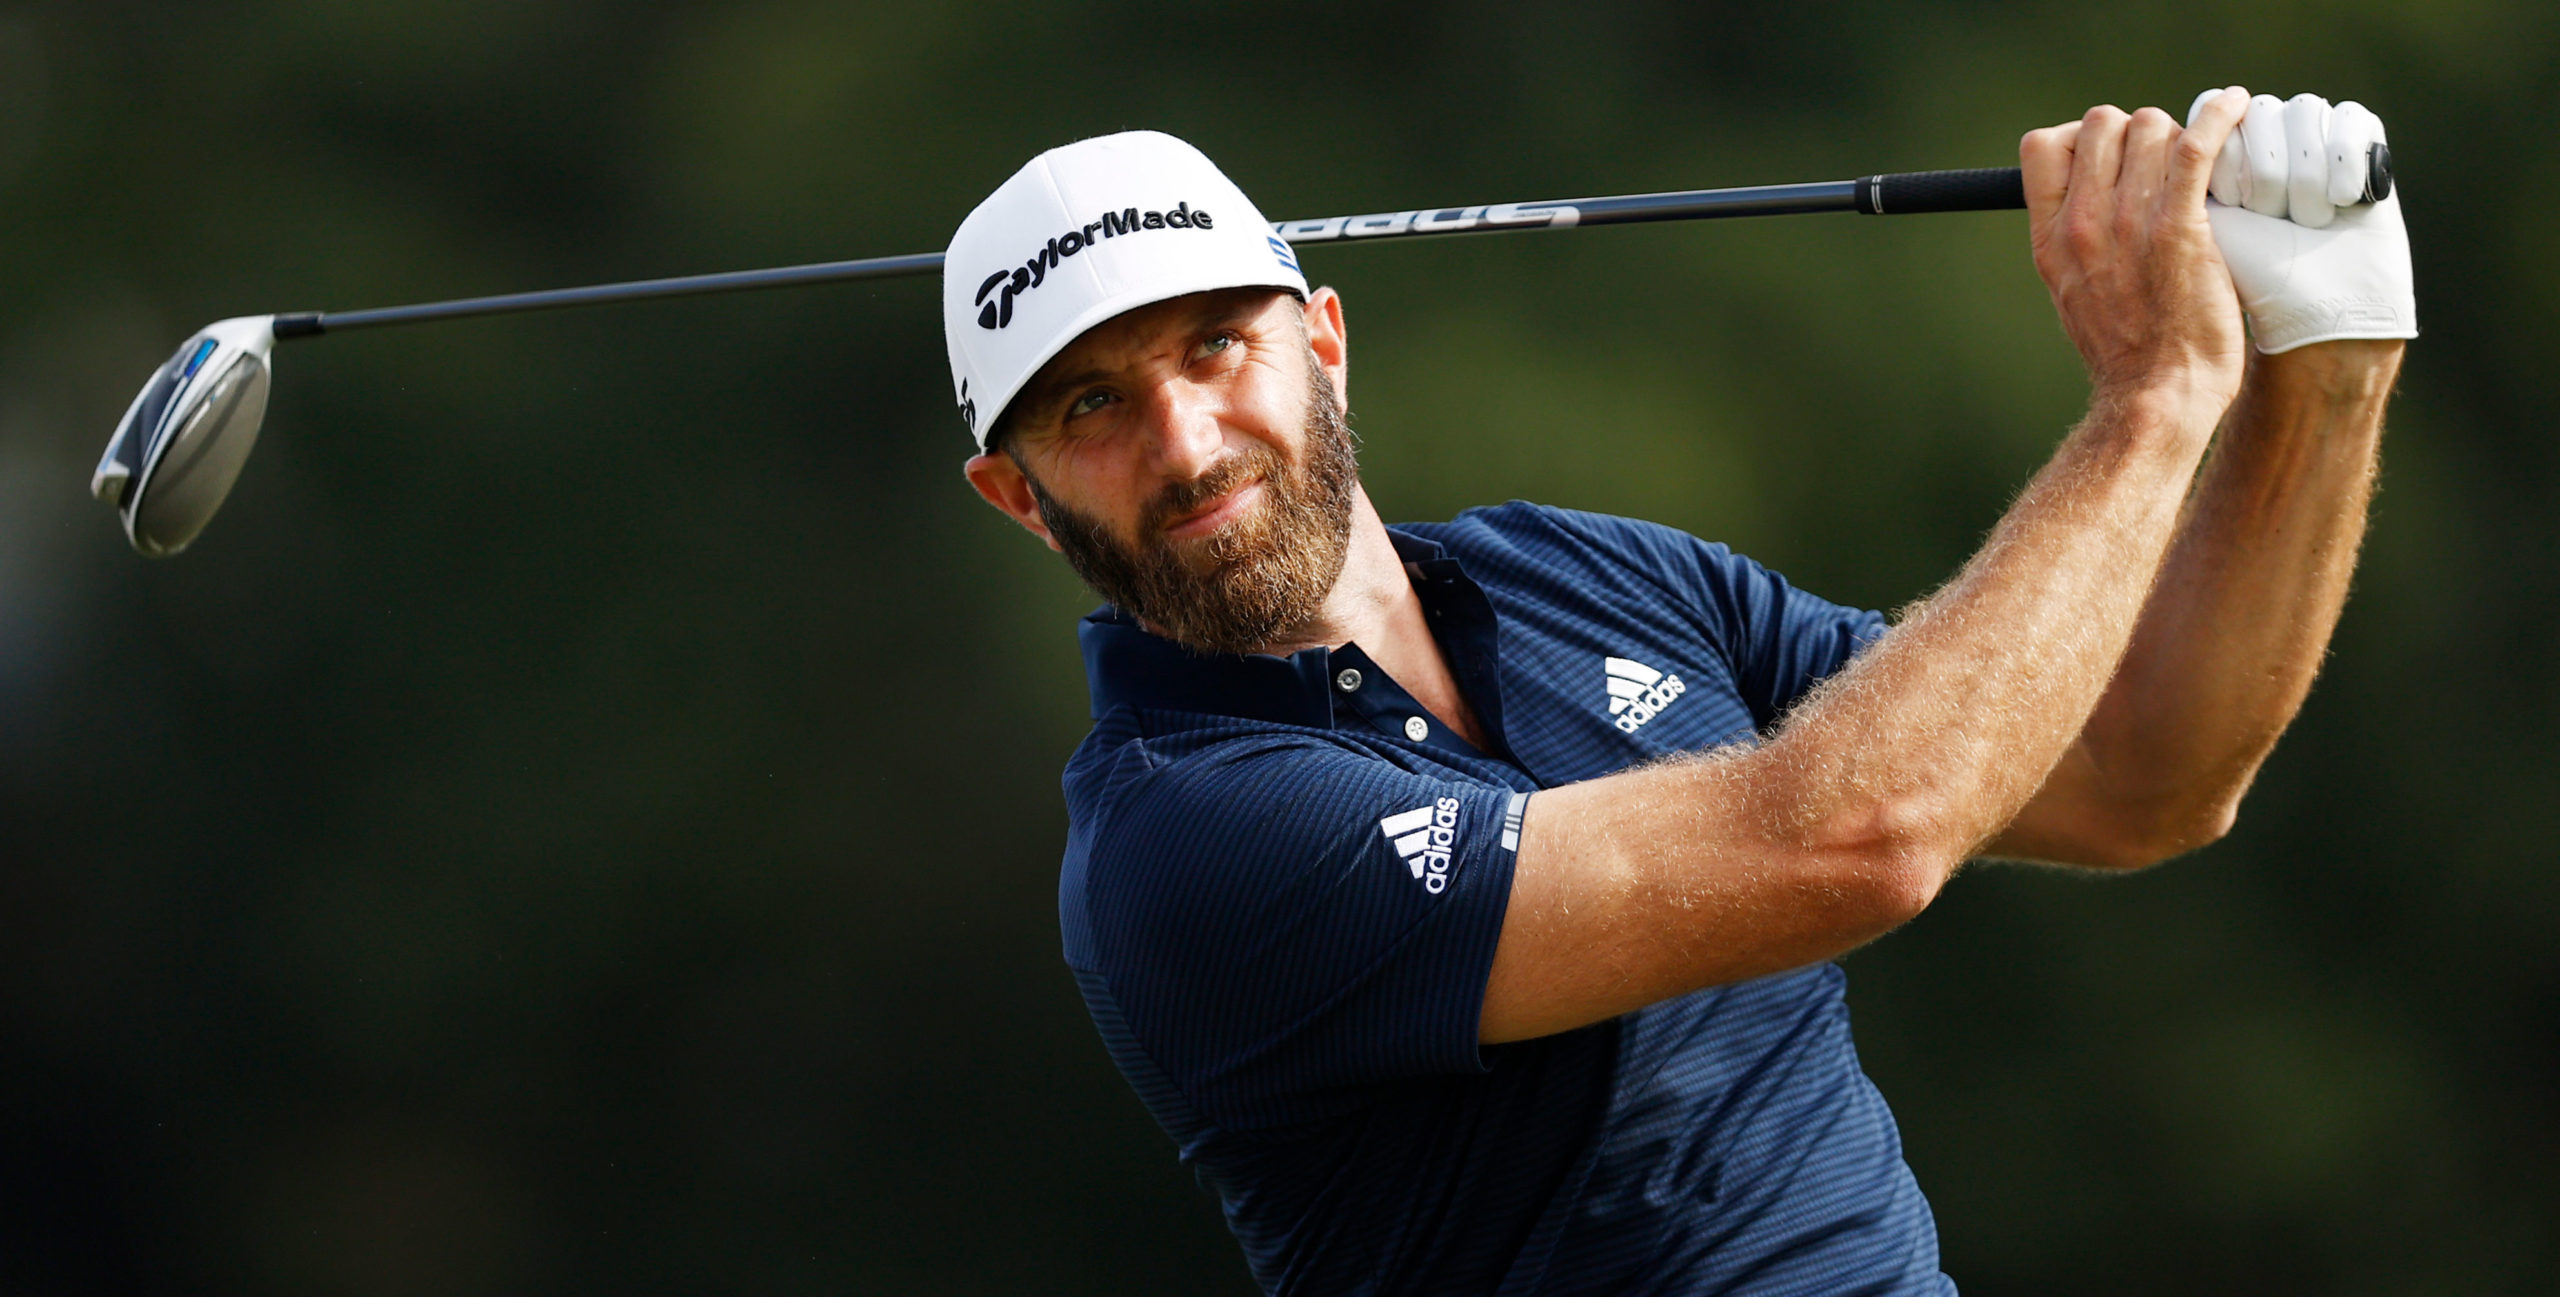 Us masters golf 2021 betting trends betting directory melbourne cup live